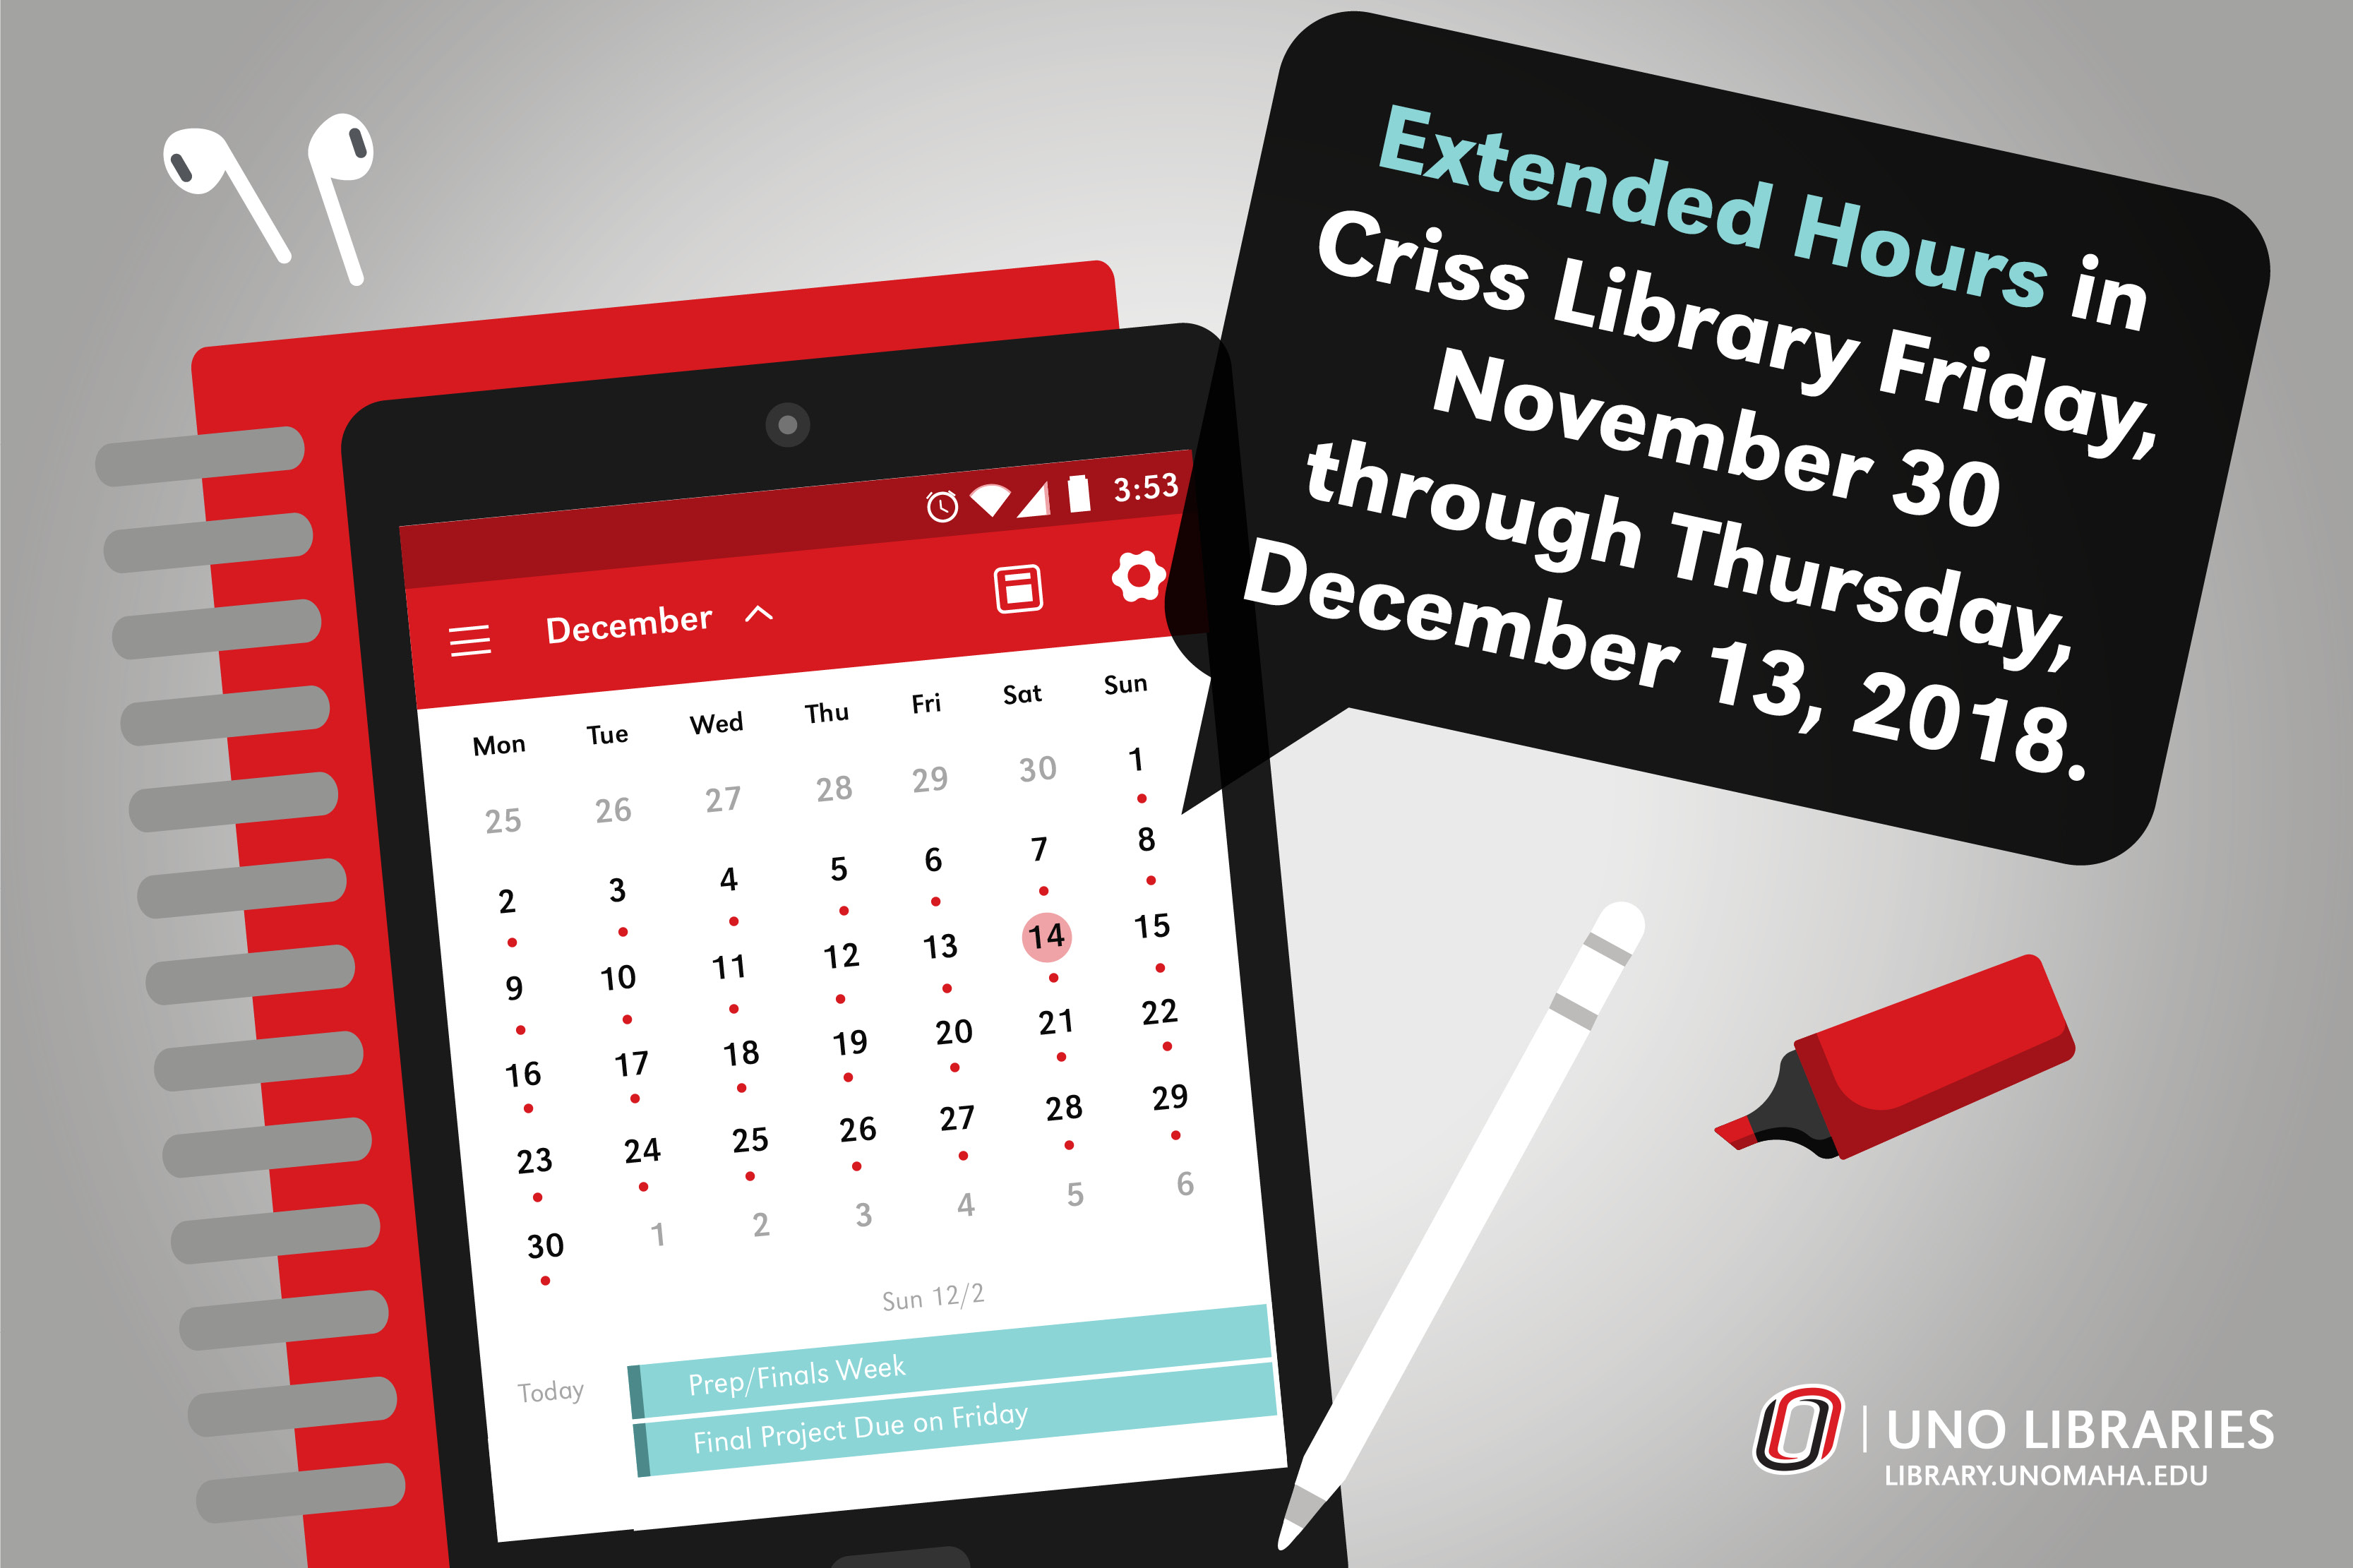 Criss Library Extended Hours